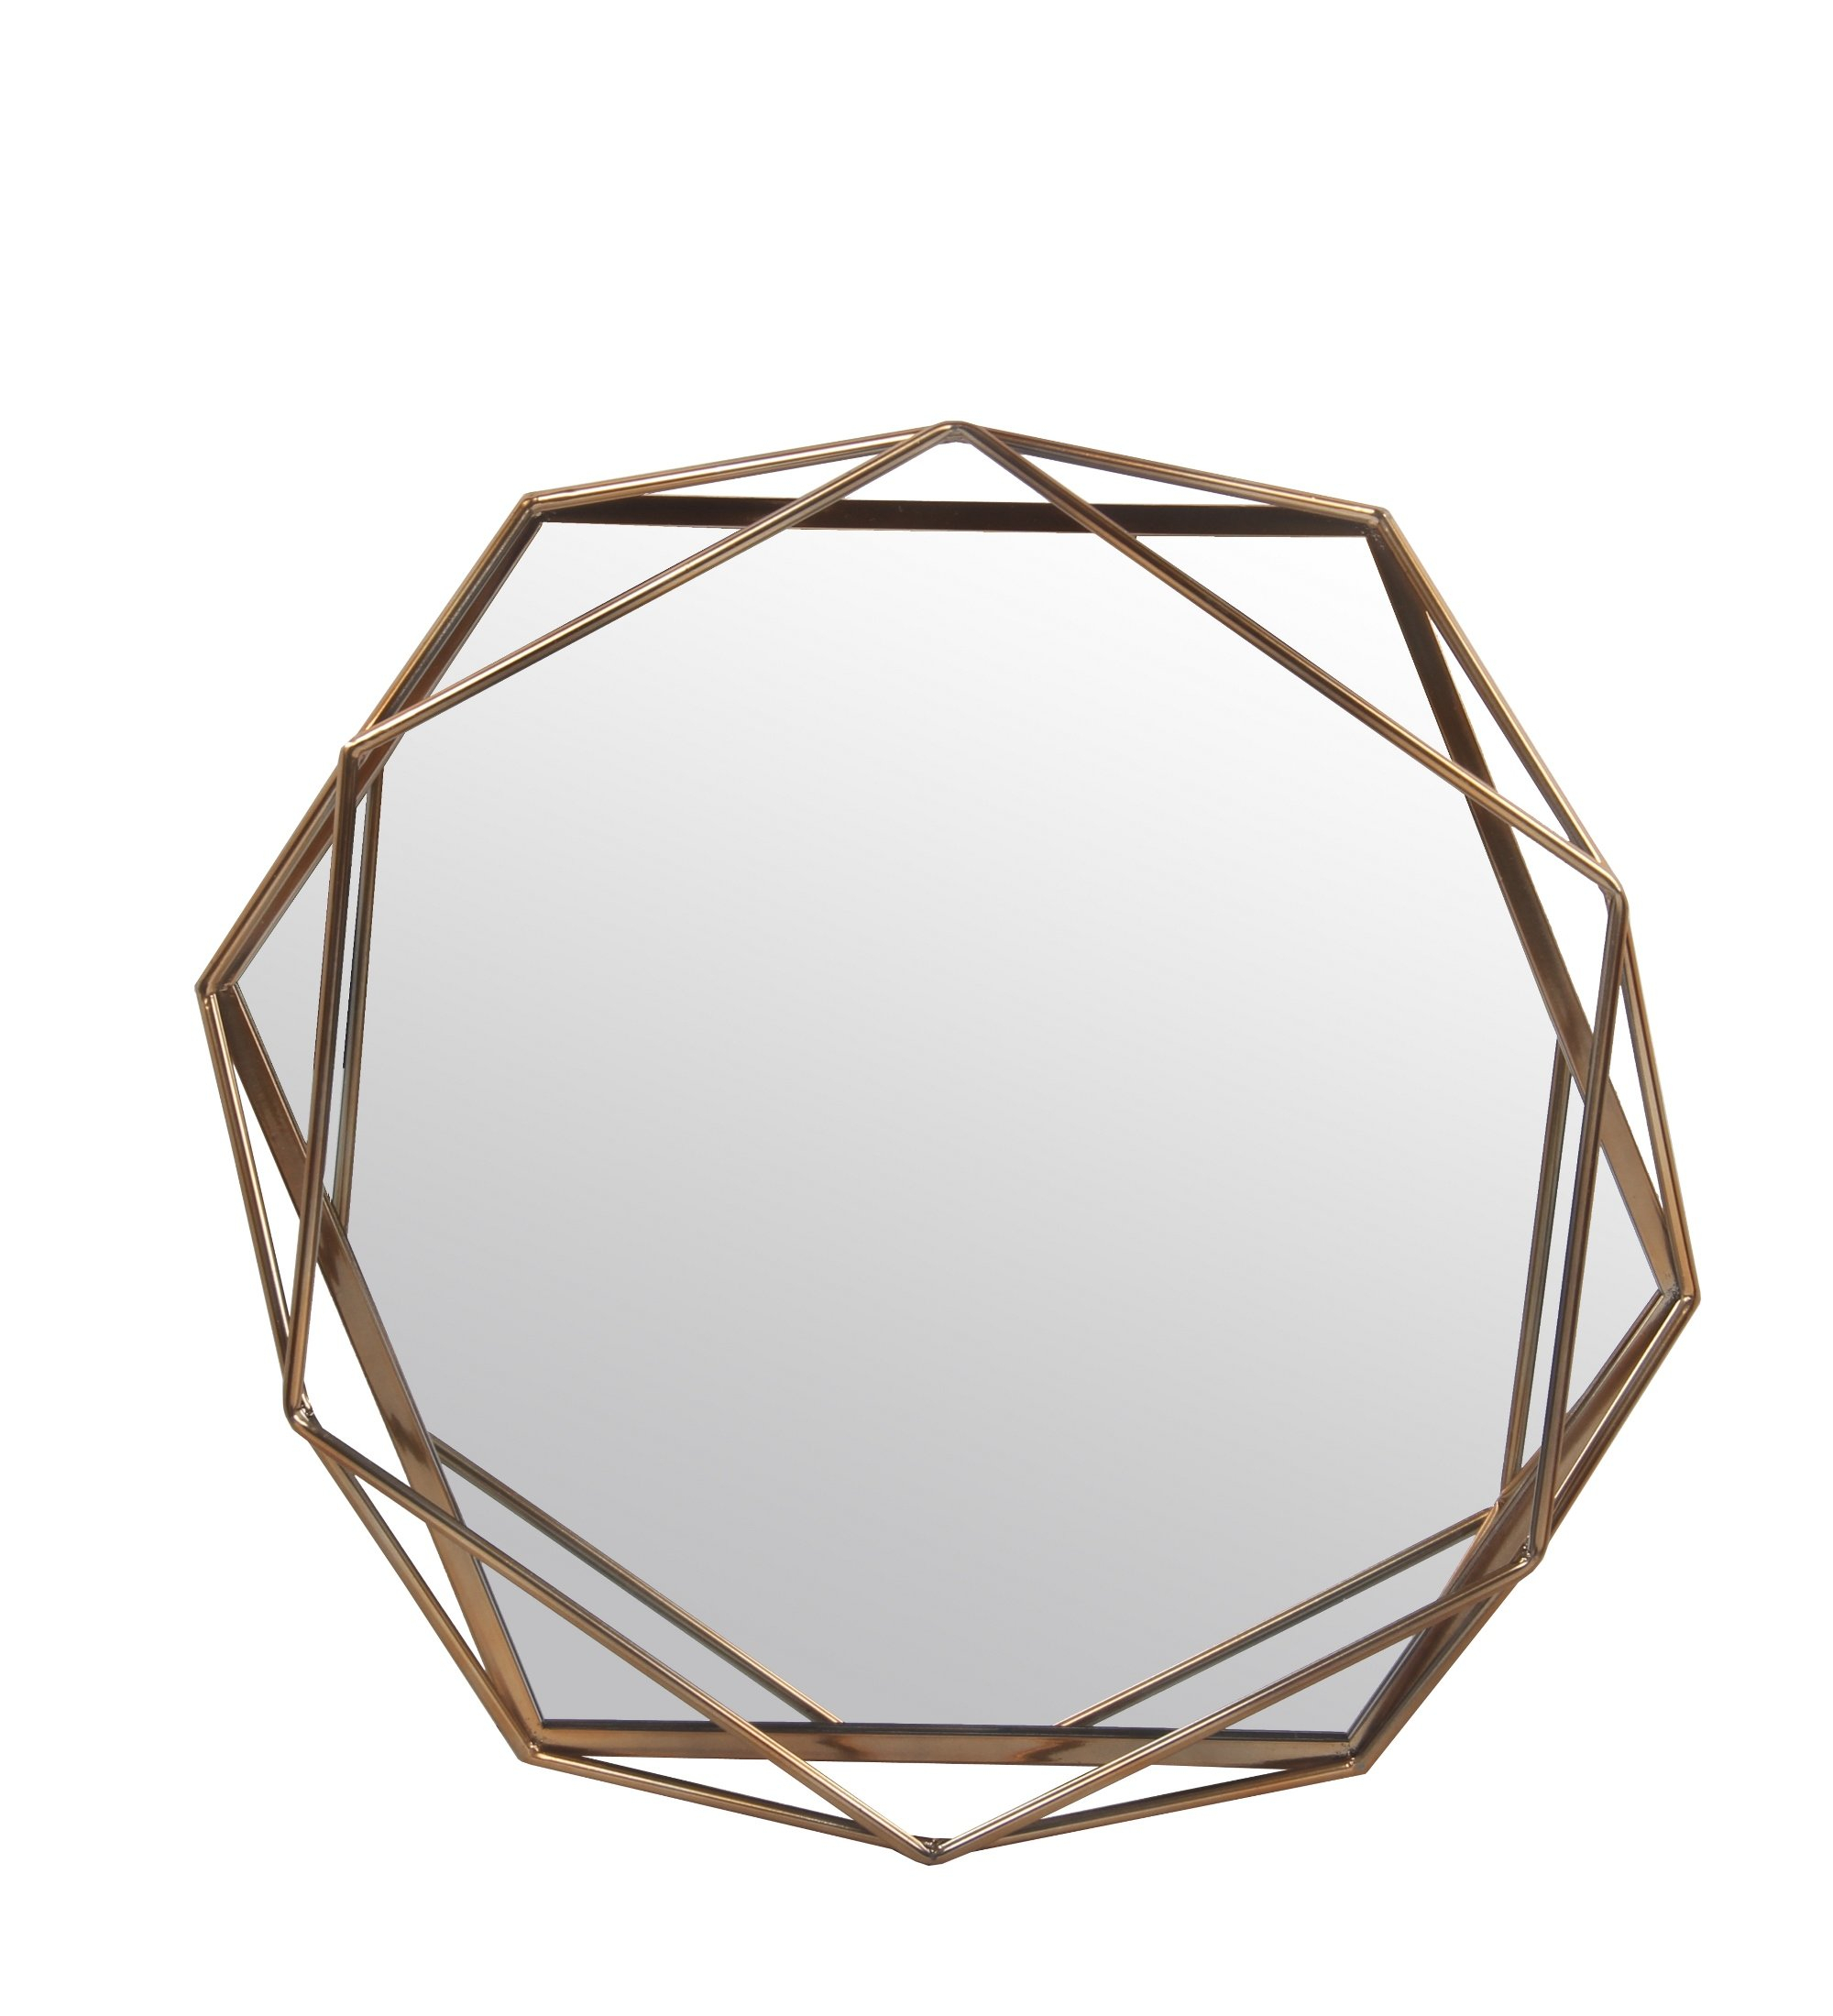 Dekalb Modern & Contemporary Distressed Accent Mirror Intended For Gia Hexagon Accent Mirrors (Image 5 of 20)